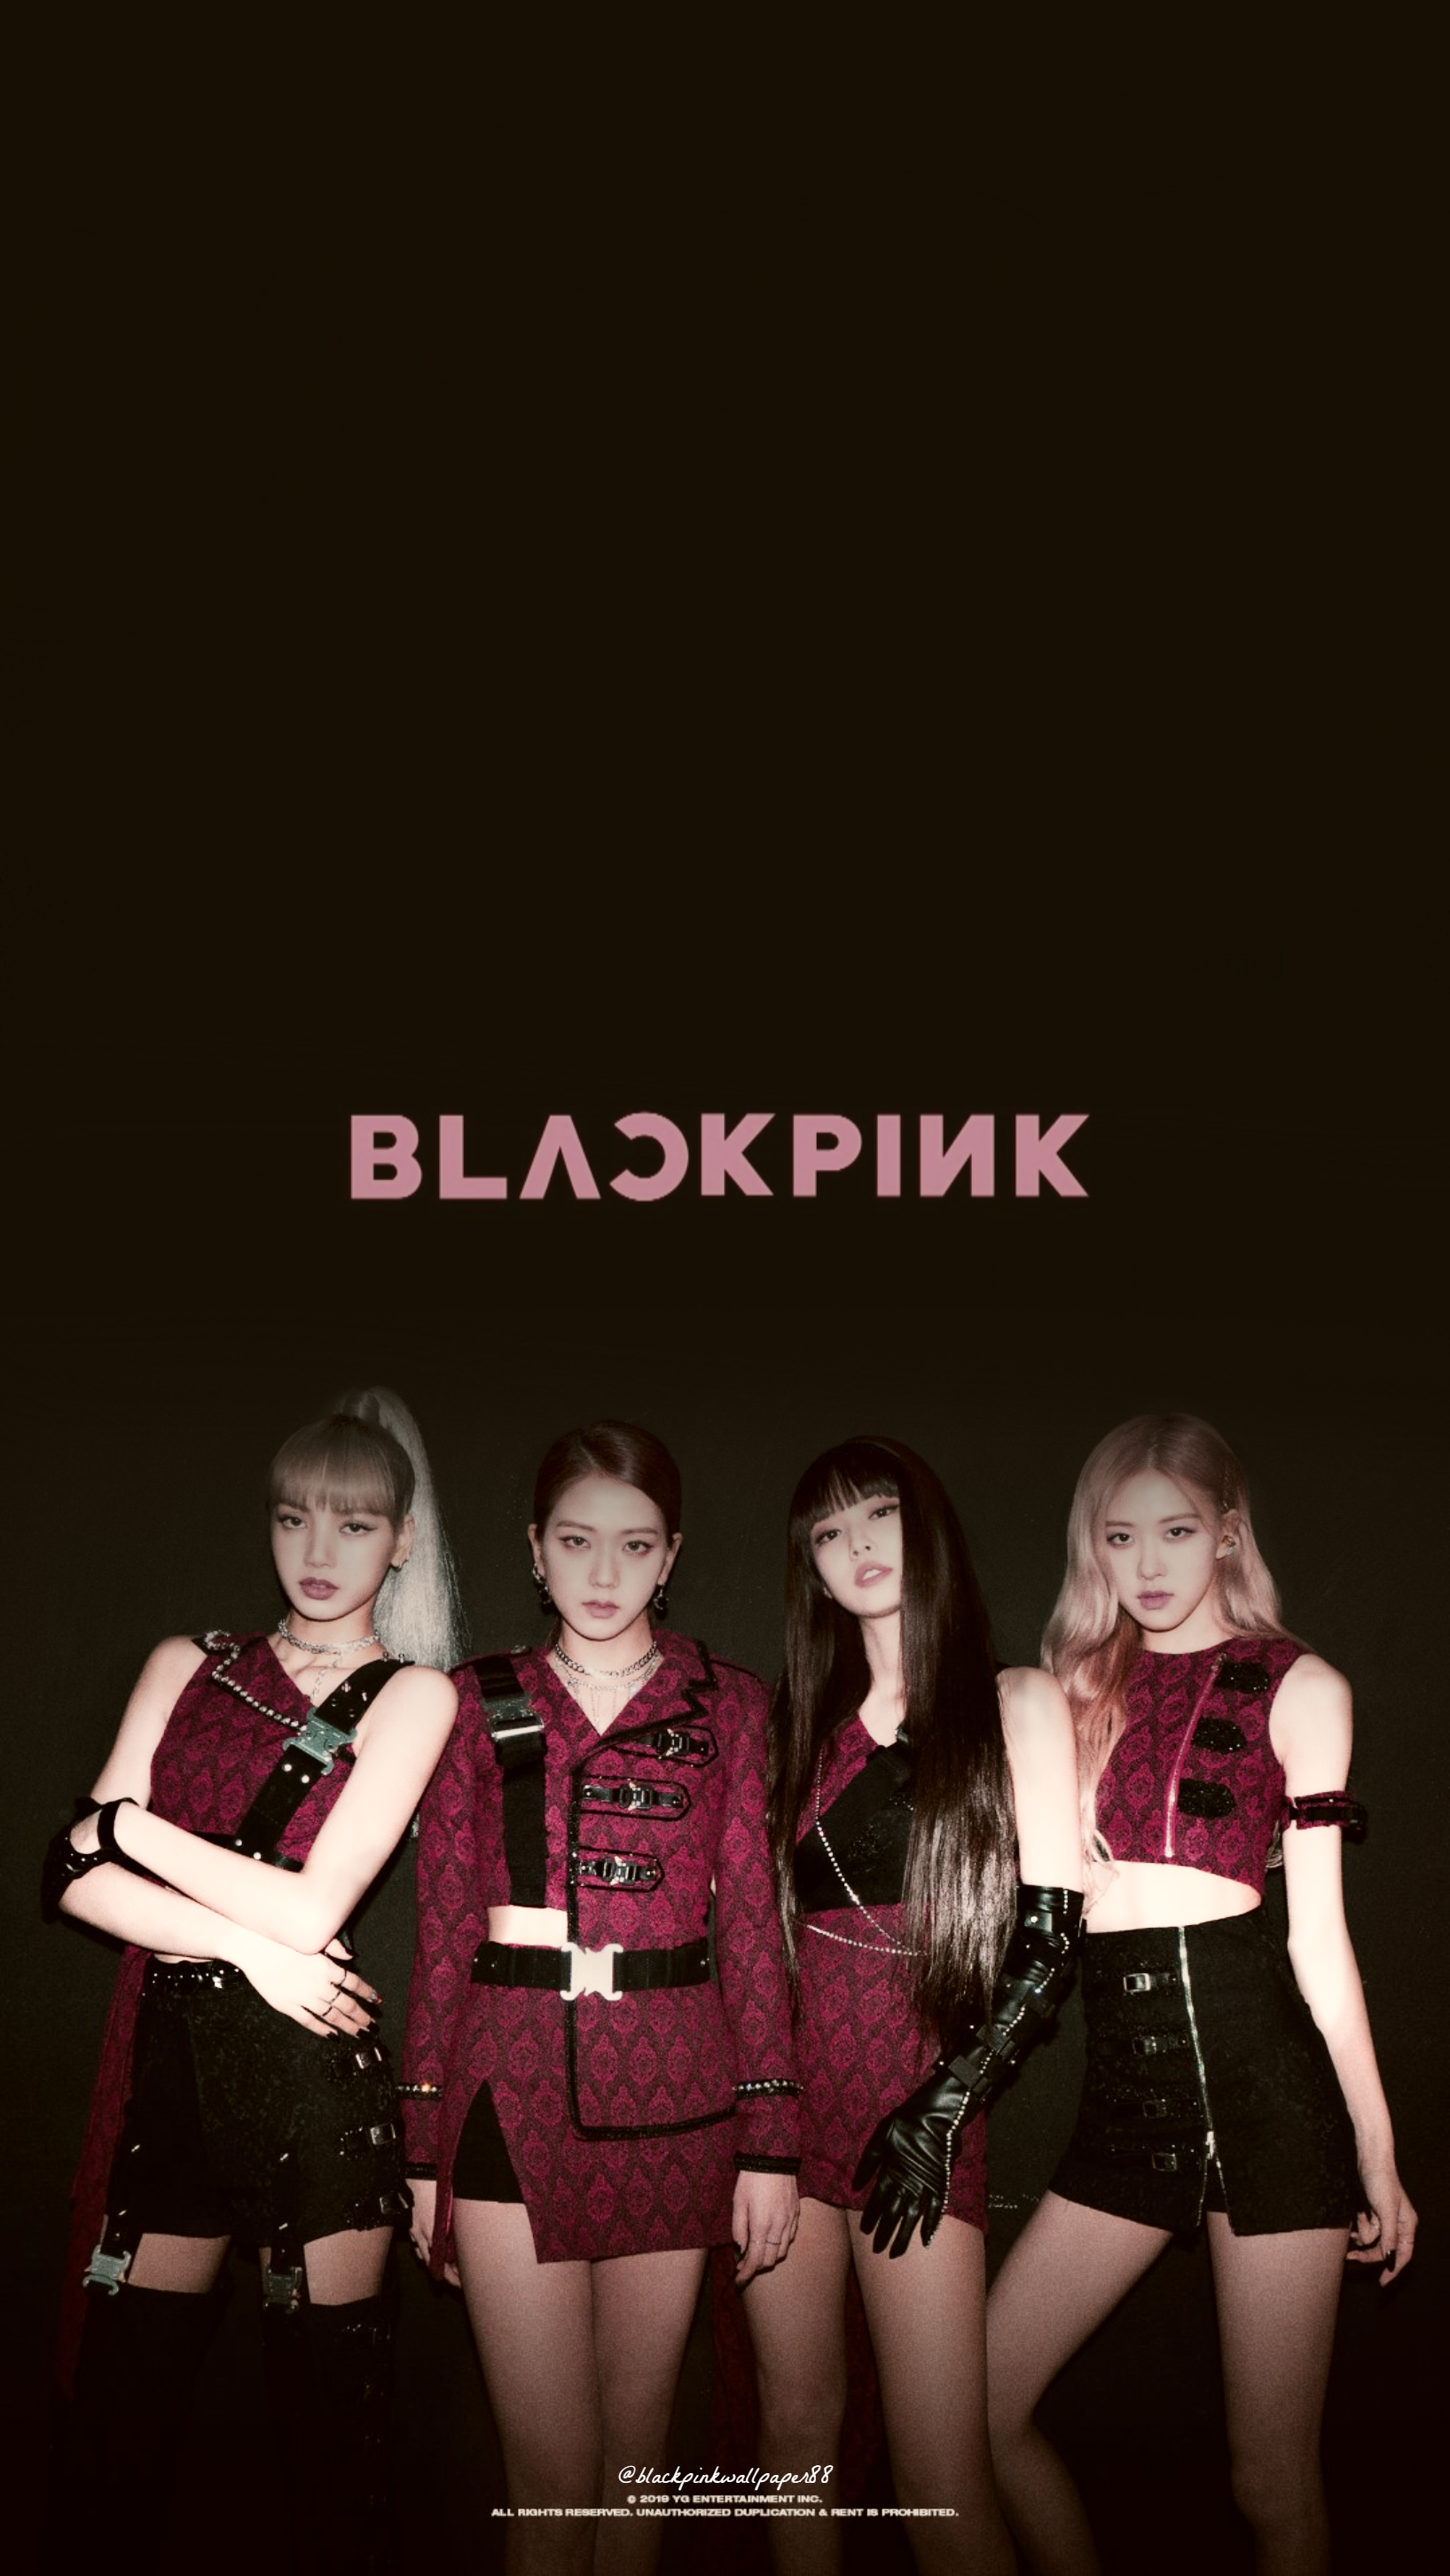 Blackpink Discover Get Inspired For High Resolution Blackpink Wallpaper Phone Hd Images In 2020 Blackpink Lisa Blackpink Wallpaper Blackpink Jisoo